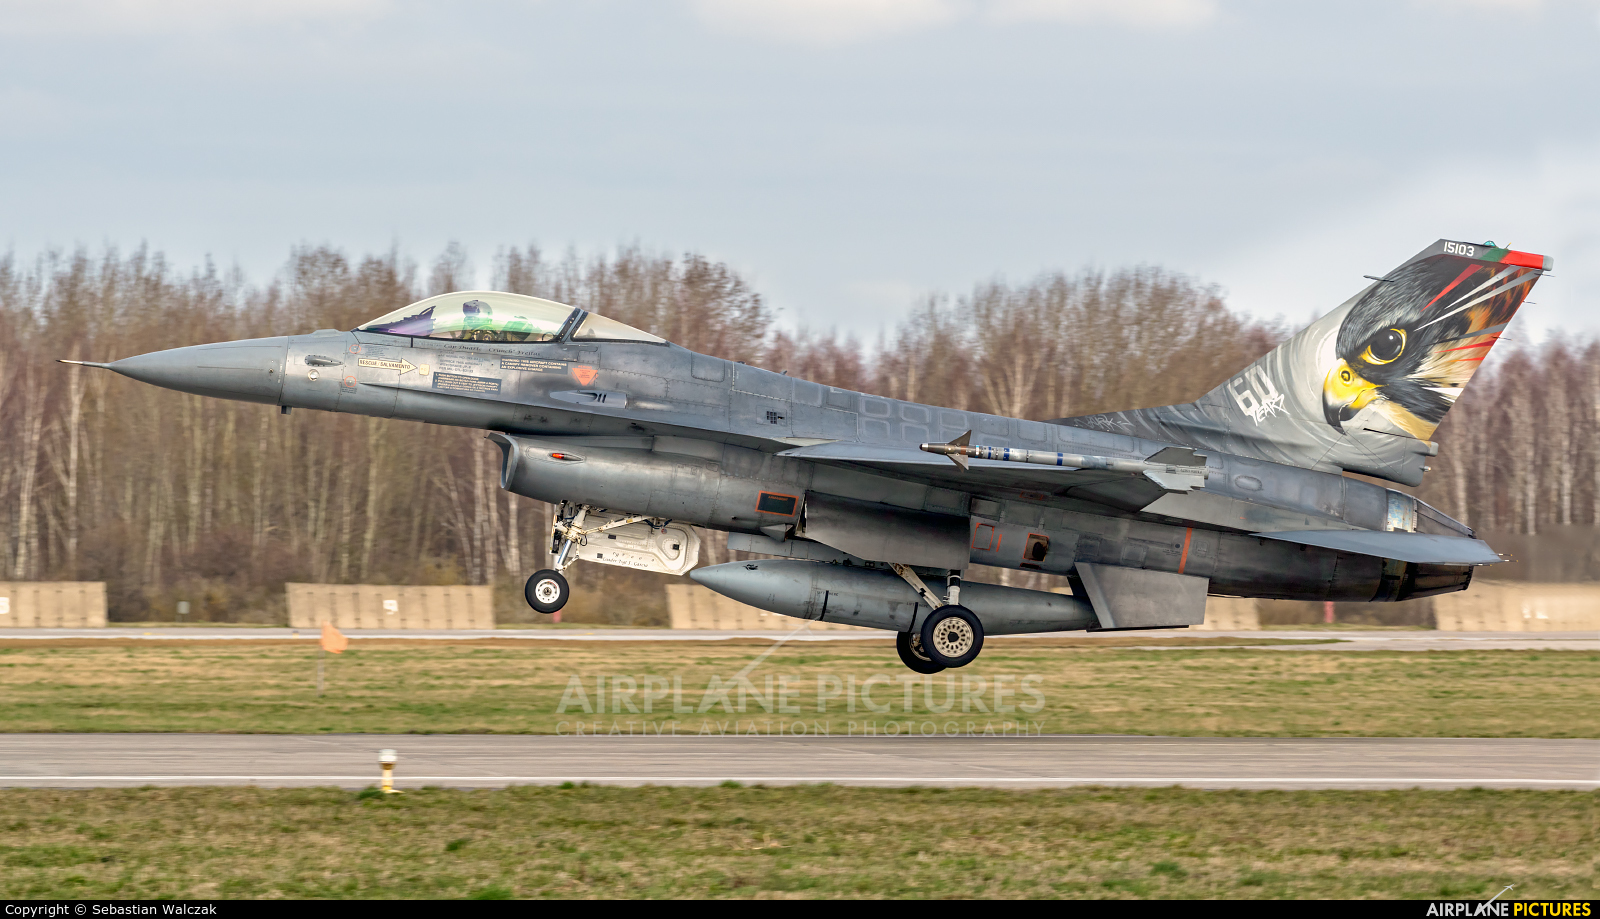 15103 - Portugal - Air Force General Dynamics F-16A Fighting